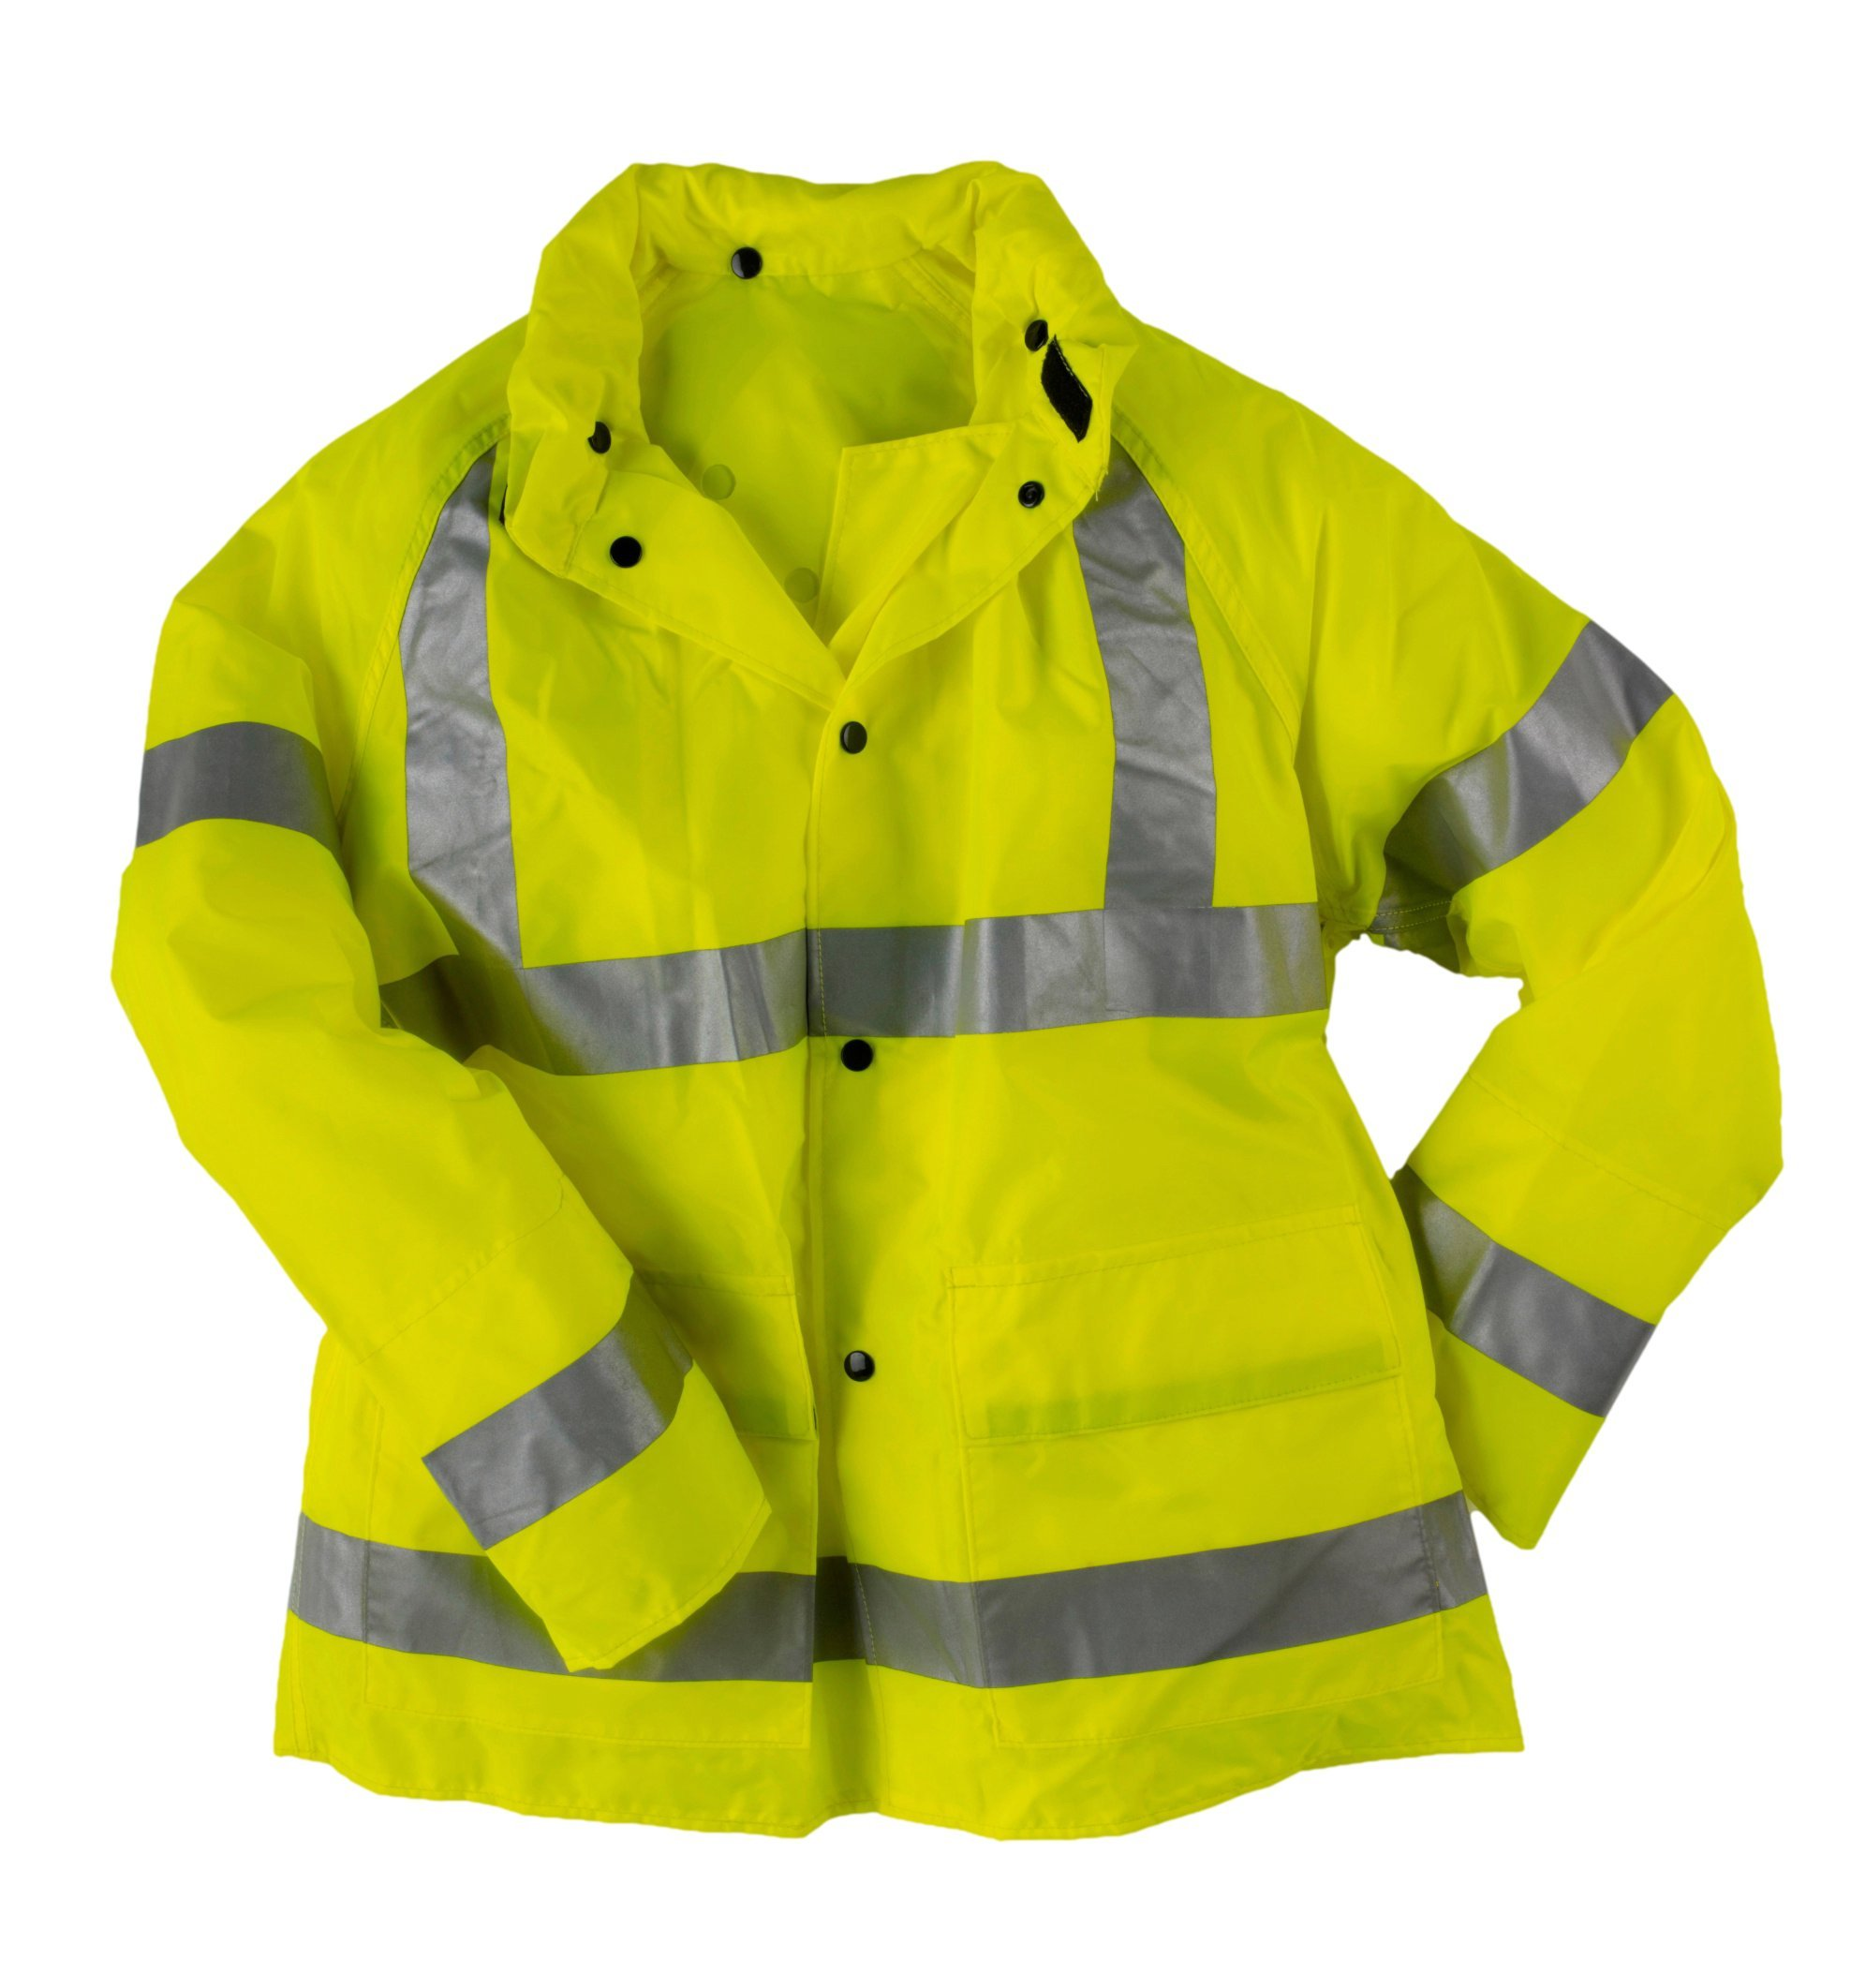 Neese Telcom 7002AJ Polyurethane/Nylon High Visibility Jacket with Attached Tuck-Away Hood, Extra Large, Lime